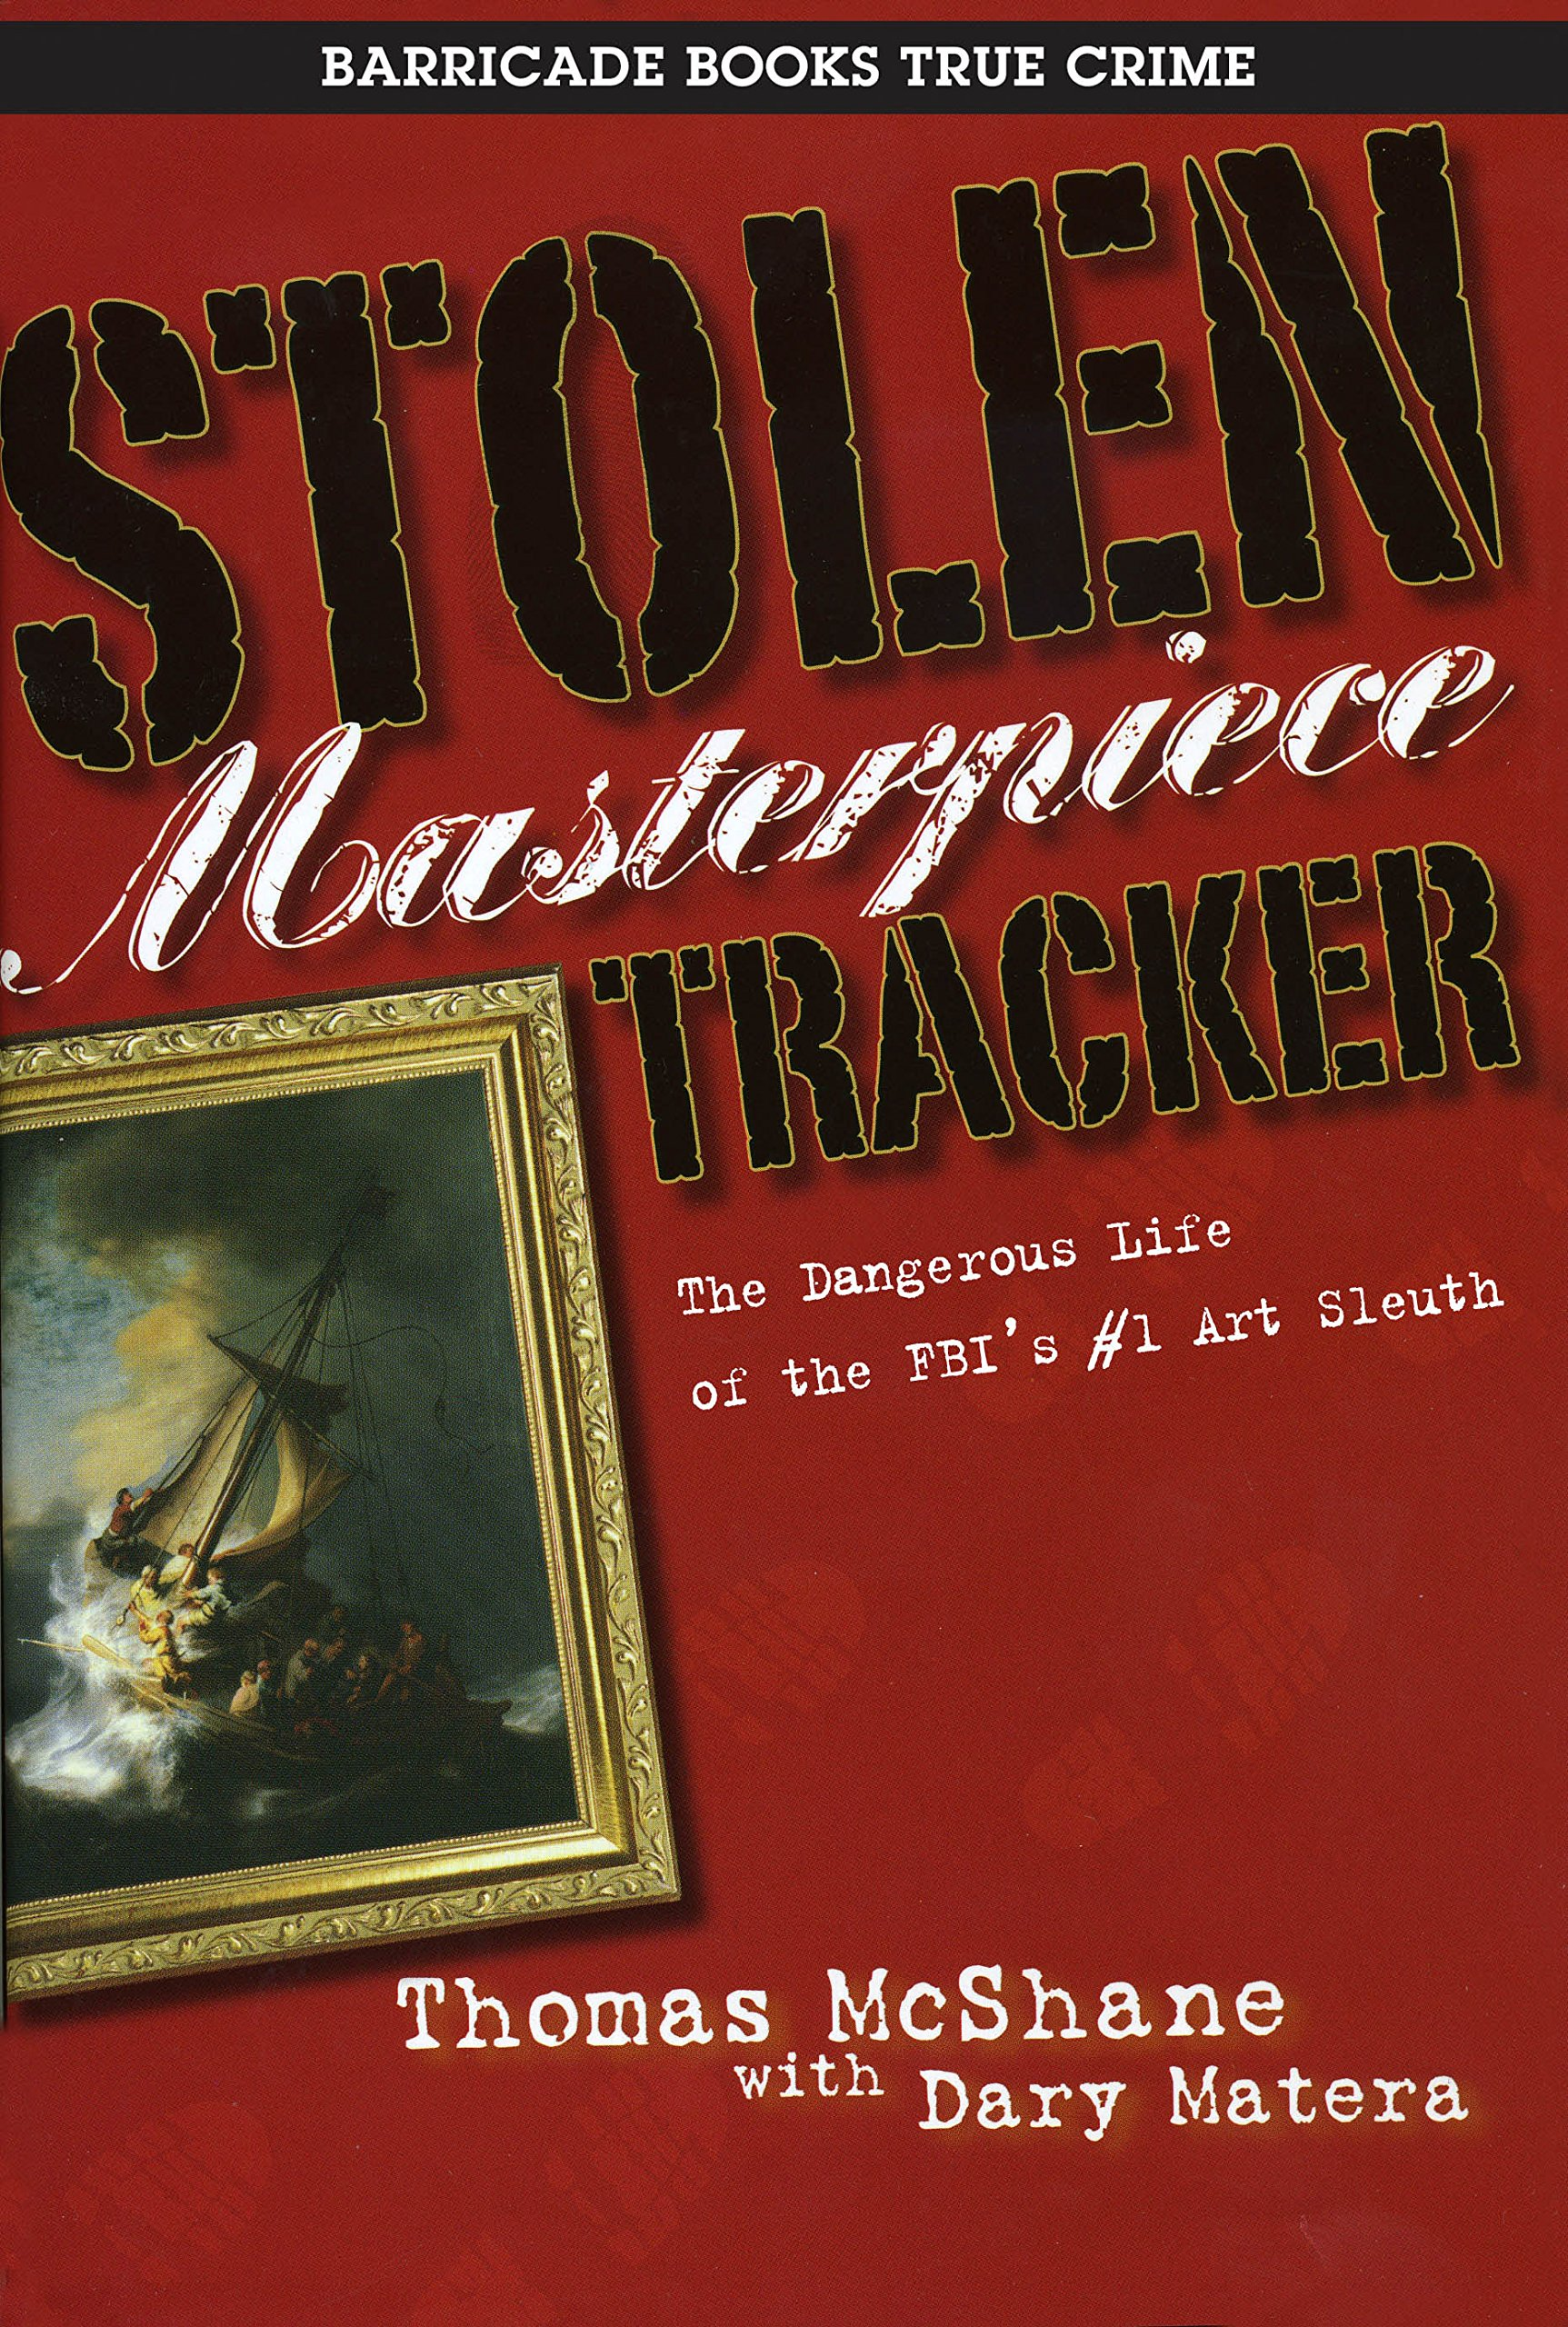 Stolen Masterpiece Tracker: Inside the Billion Dollar World of Stolen Masterpieces pdf